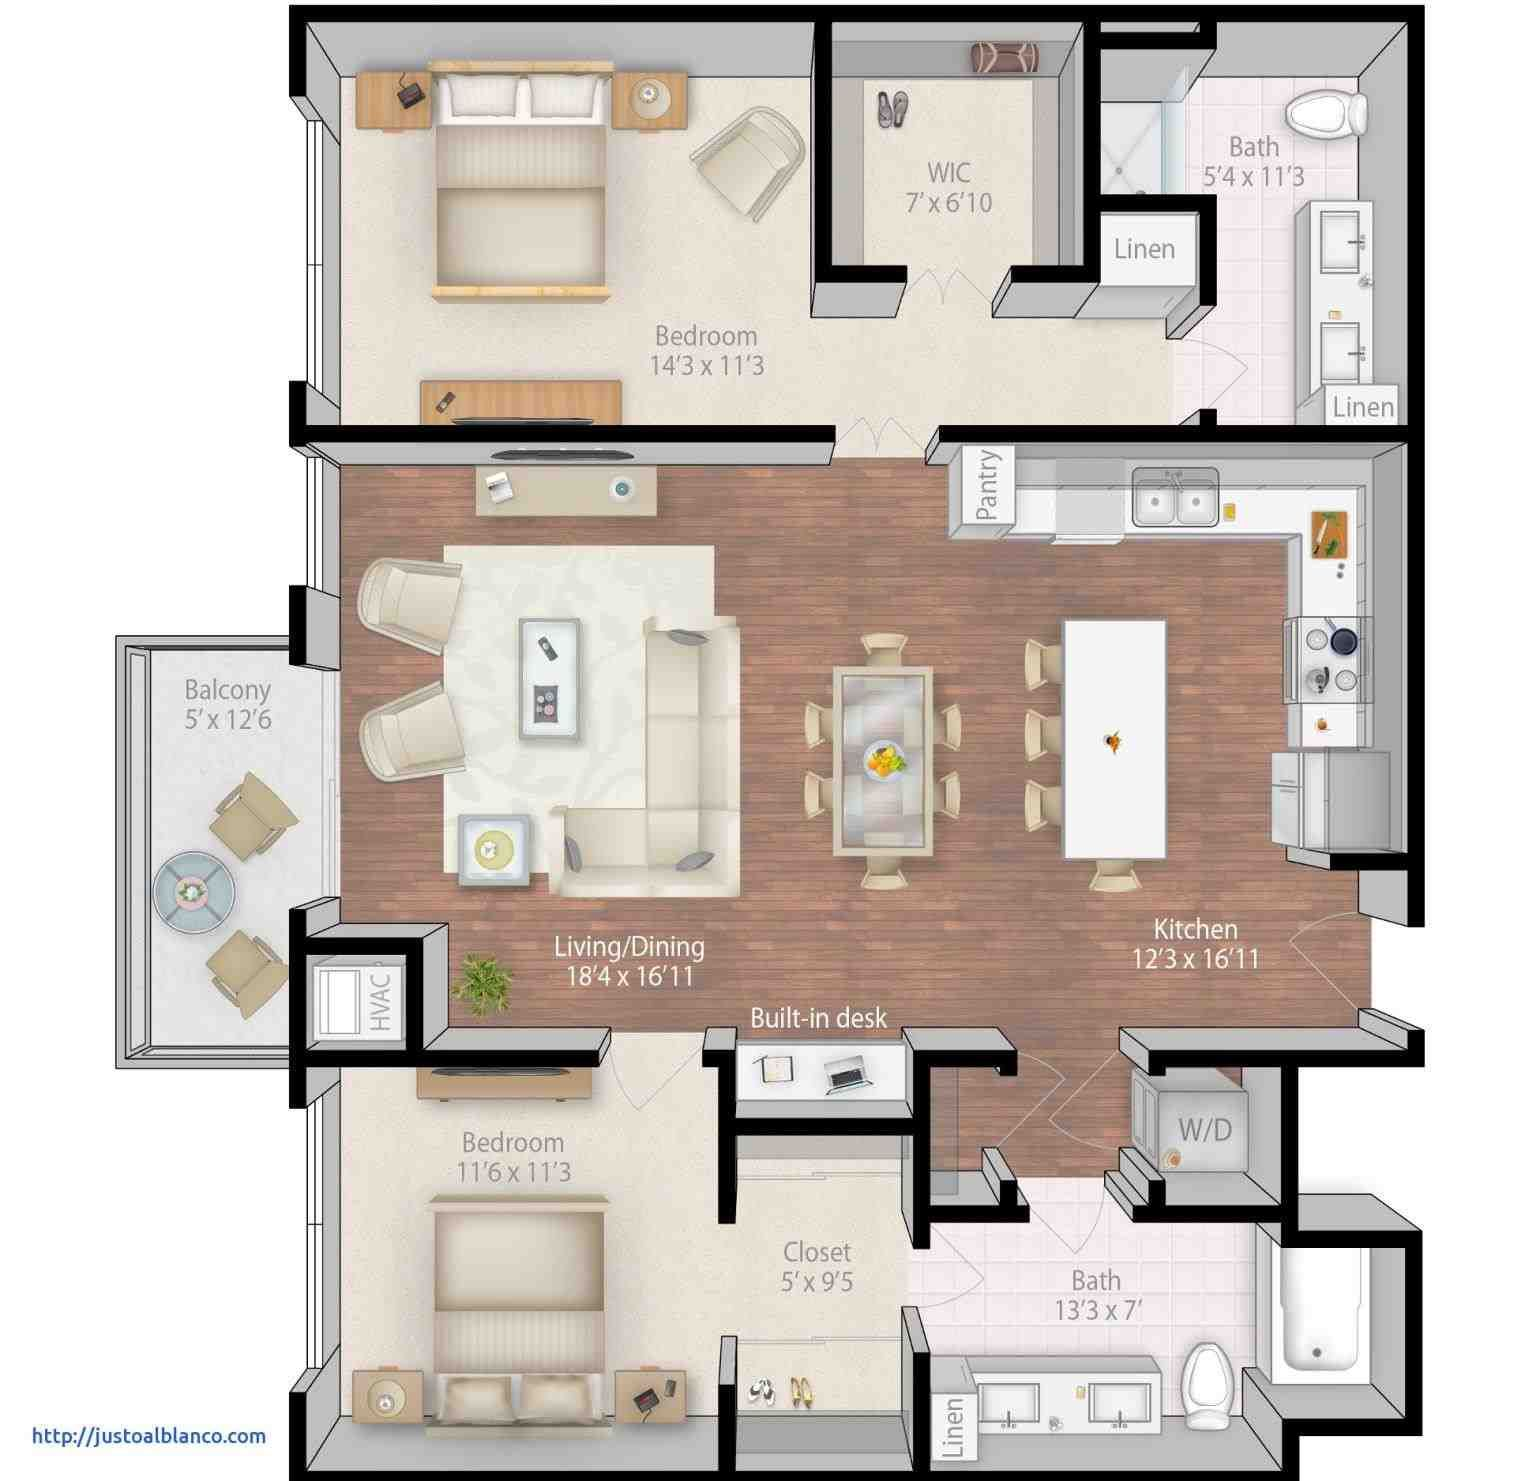 4 Bedroom Luxury Apartment Floor Plans Bedroom Studio 1 2